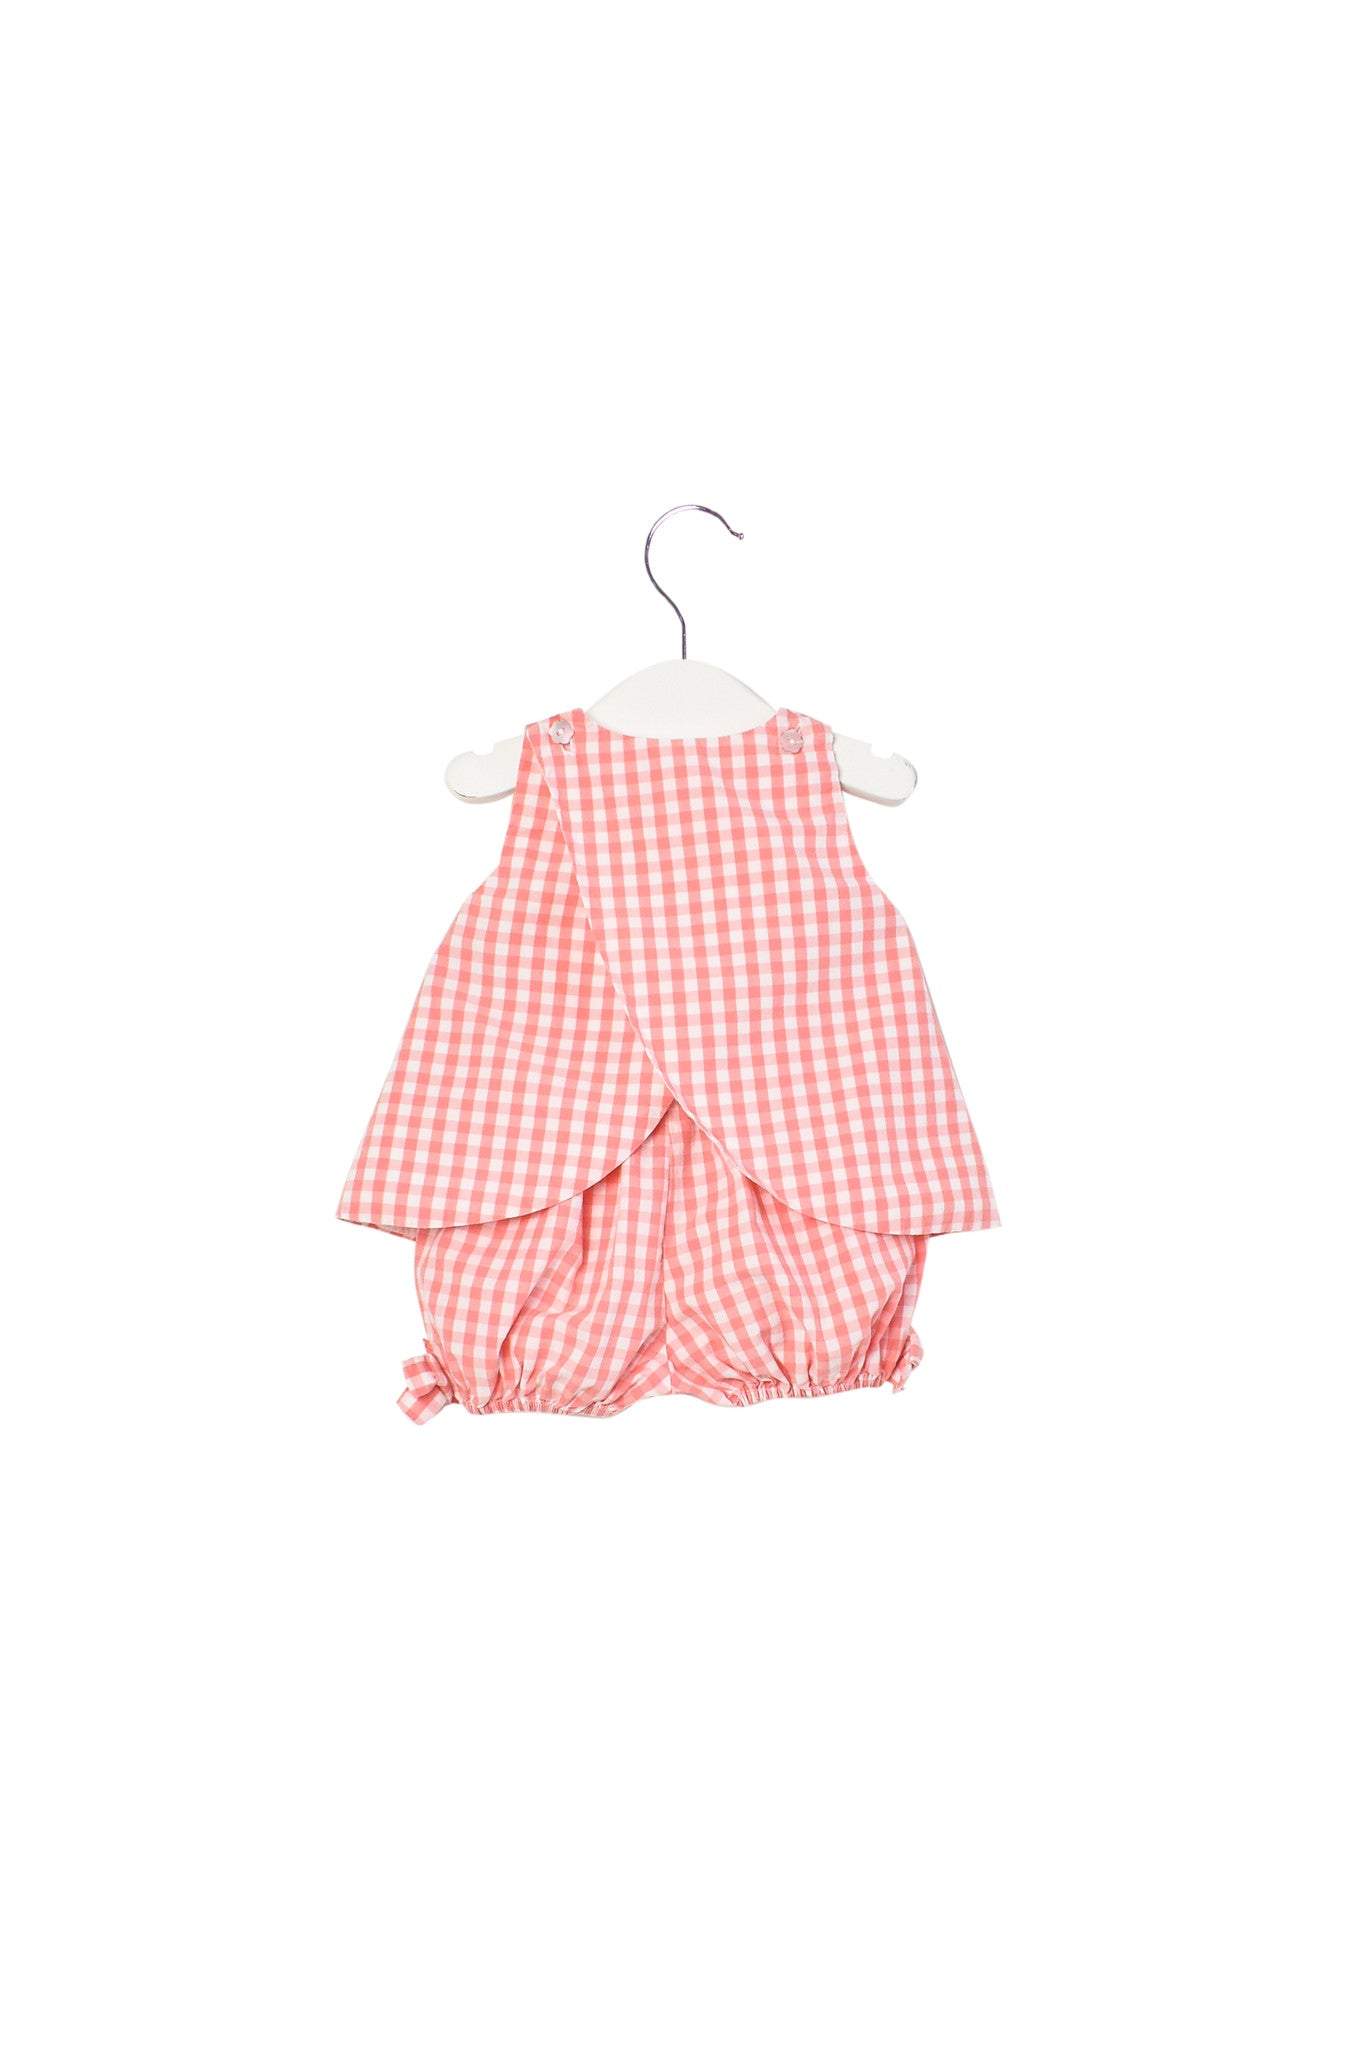 10003608 Jacadi Baby~Top and Shorts 1M at Retykle